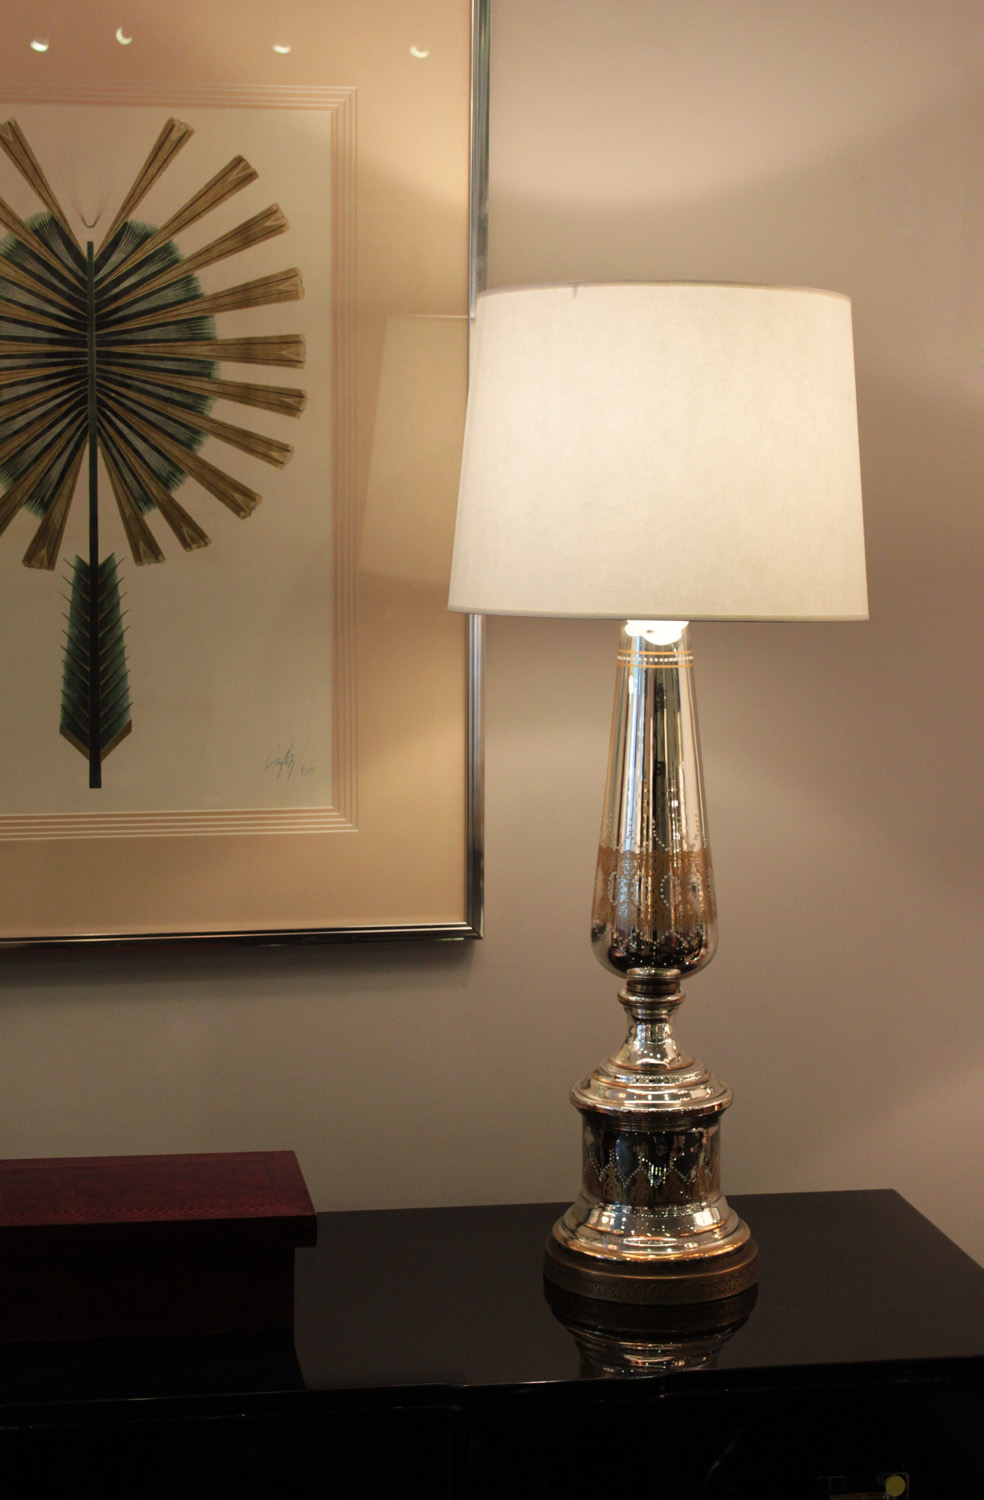 40s 75 lrg mercury+gold&white dec tablelamps292 detail4 hires.jpg